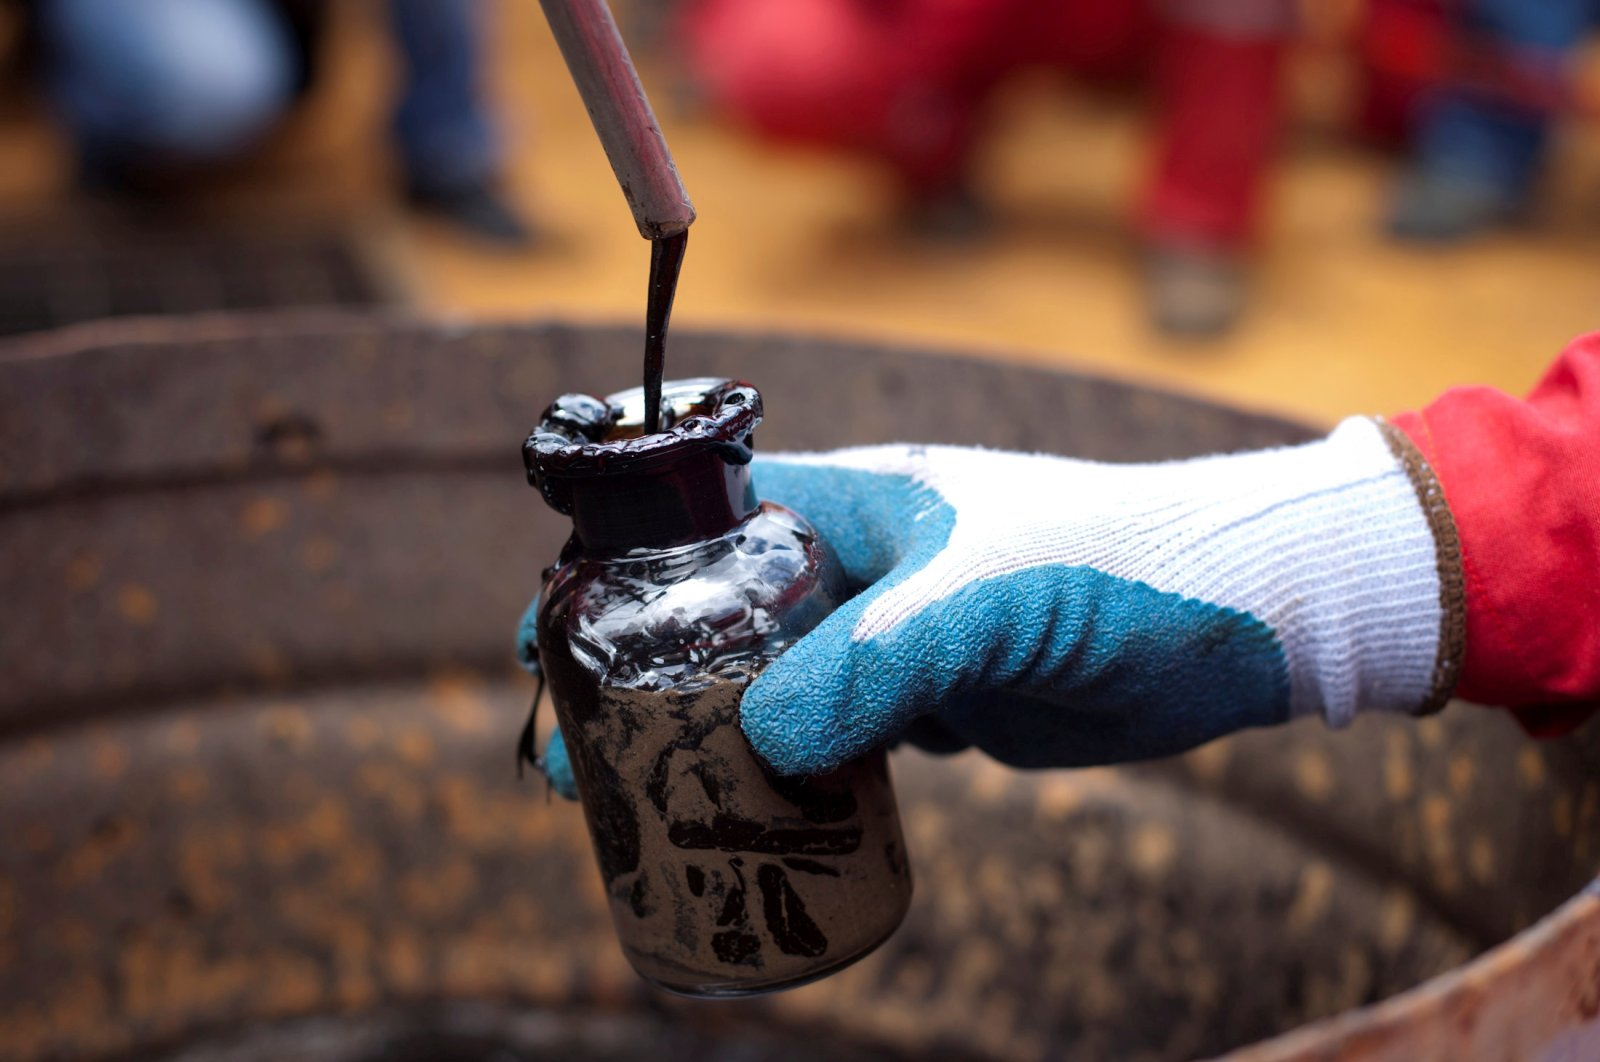 A worker collects a crude oil sample at an oil well operated by Venezuela's state oil company PDVSA in Morichal, Venezuela, July 28, 2011. (Reuters Photo)